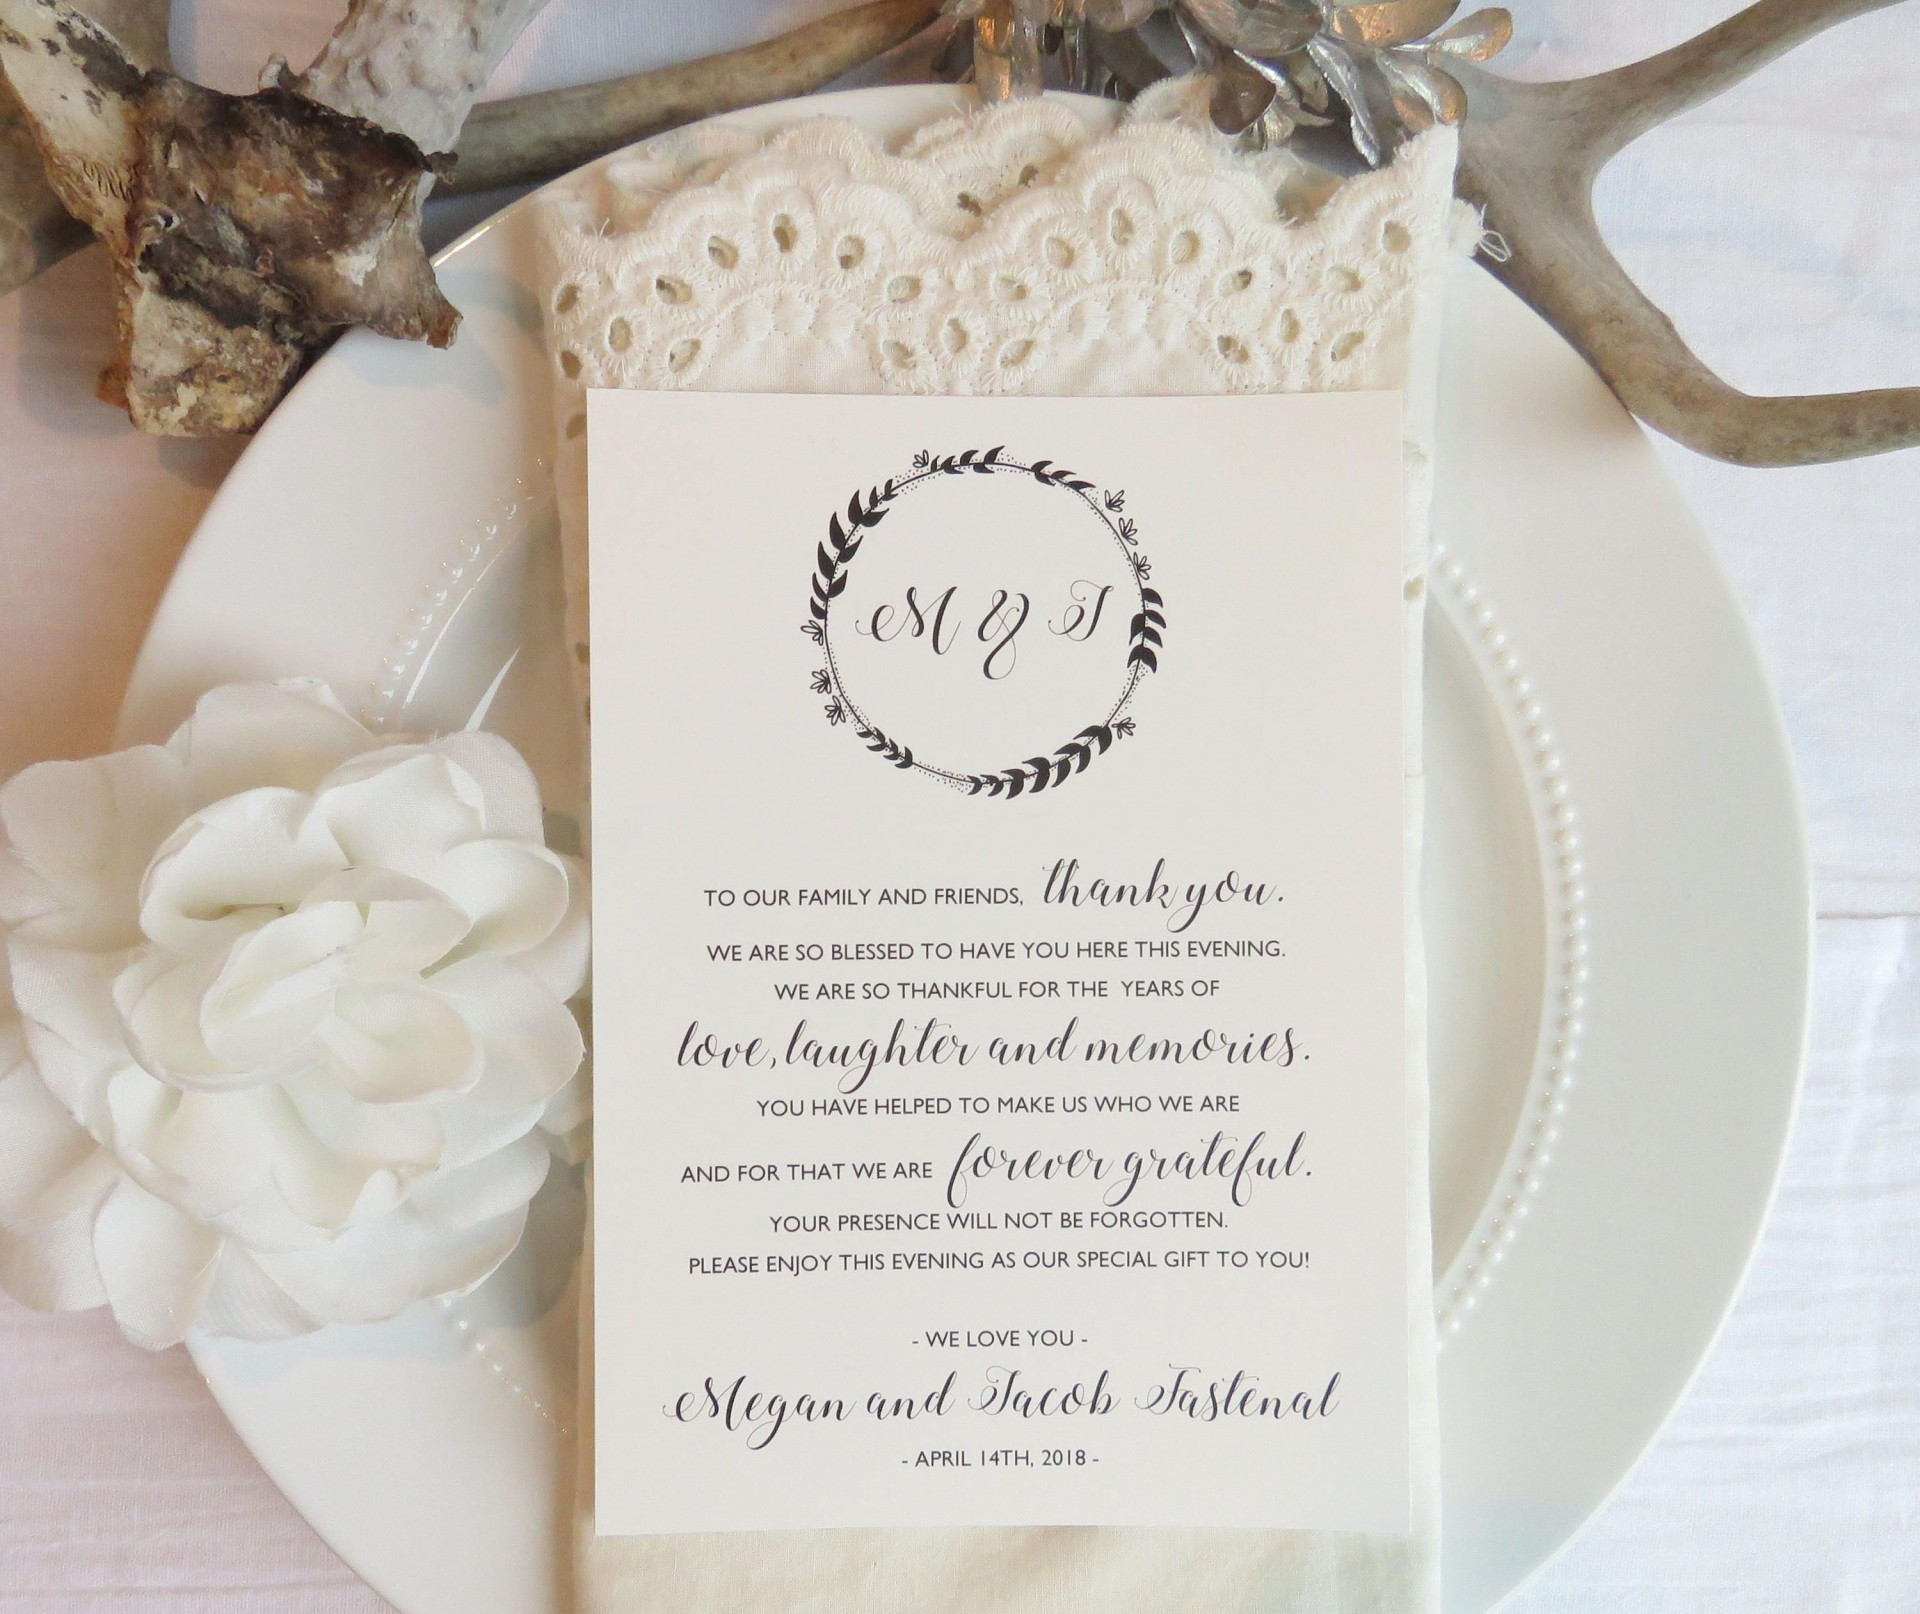 002 Beautiful Wedding Thank You Card Template Picture  Message Sample Free Download Wording For Money1920